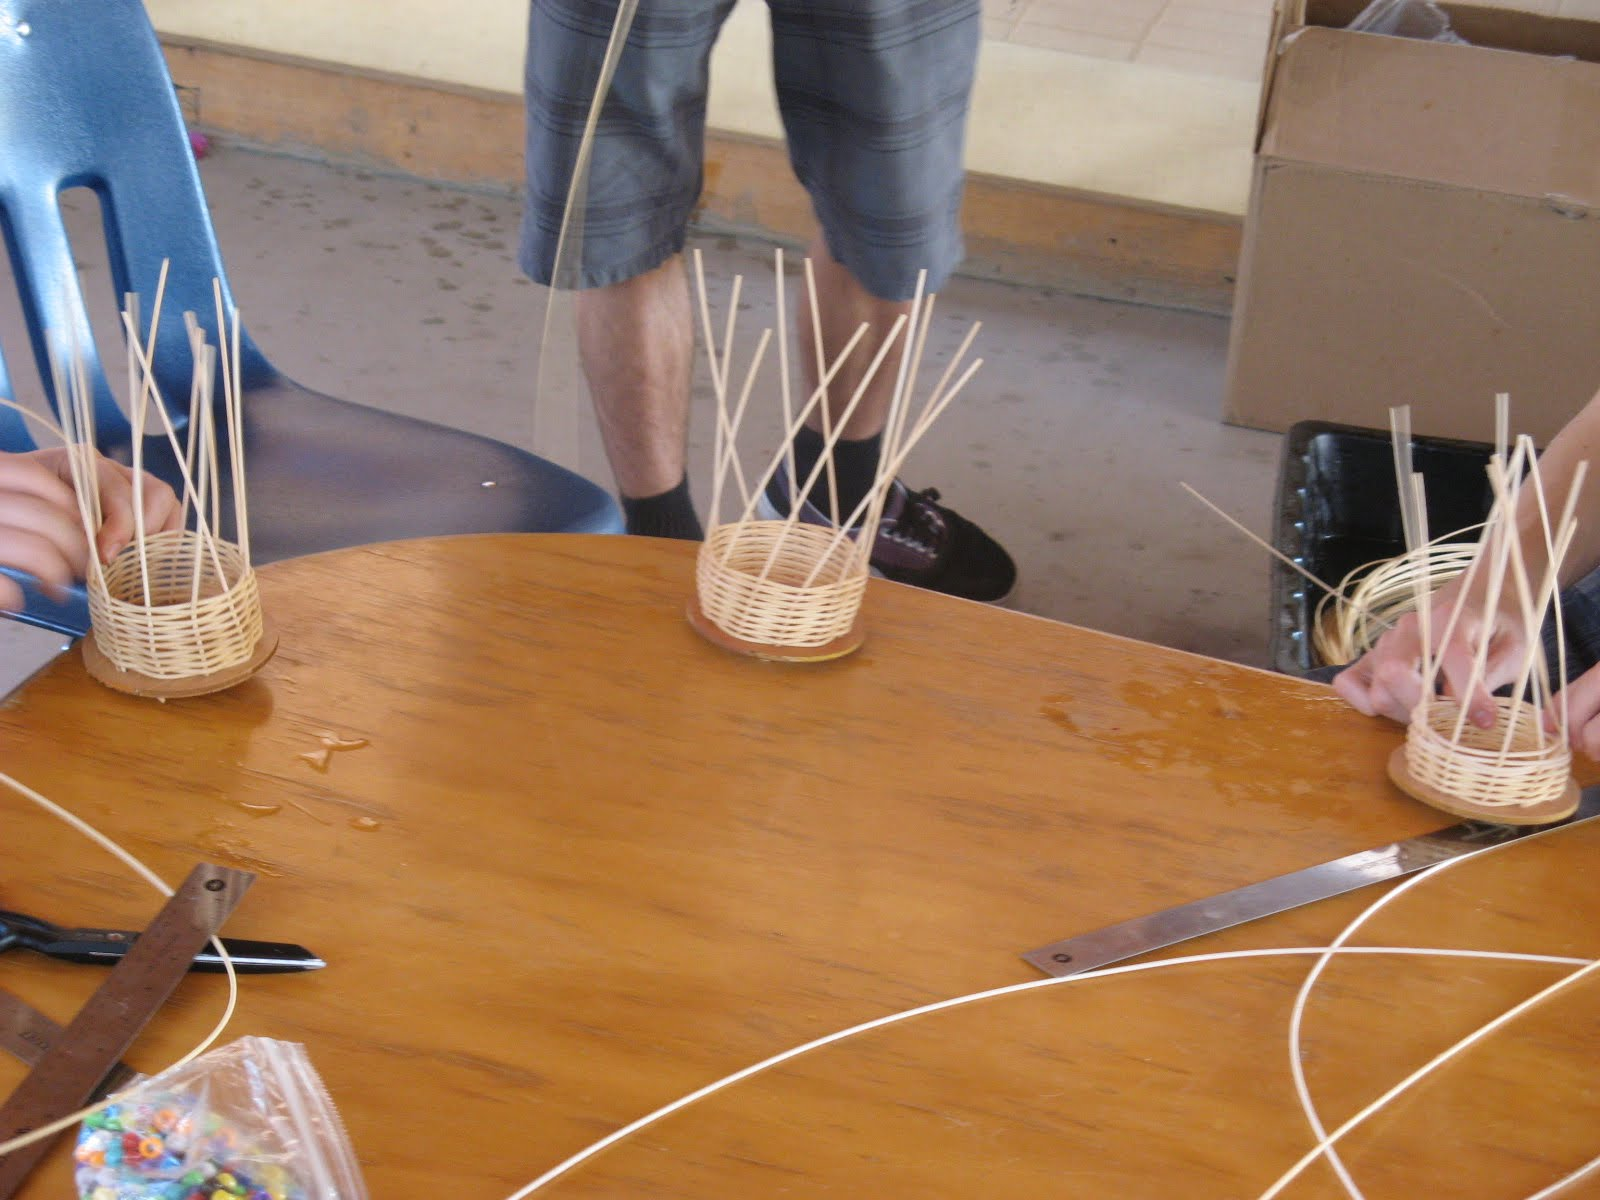 Materials Used For Making A Basket : Teaching handwork th grade waldorf basket weaving main